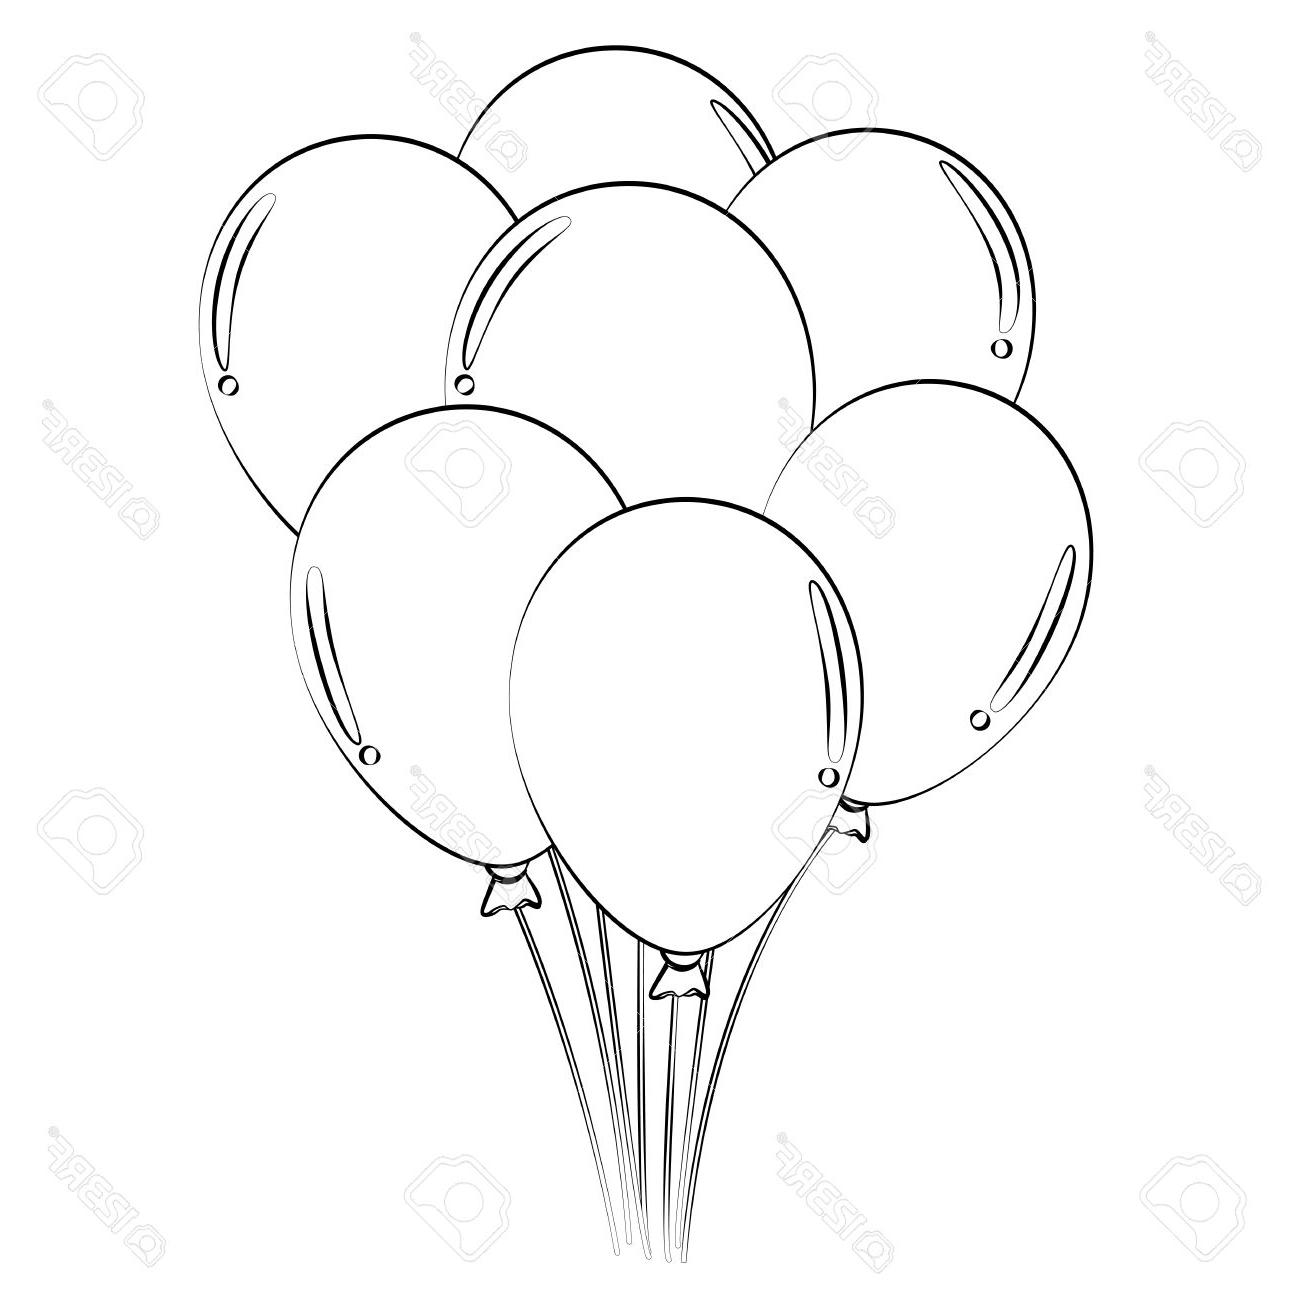 1300x1300 Top 10 Black Outline Vector Balloons On White Background Stock Drawing